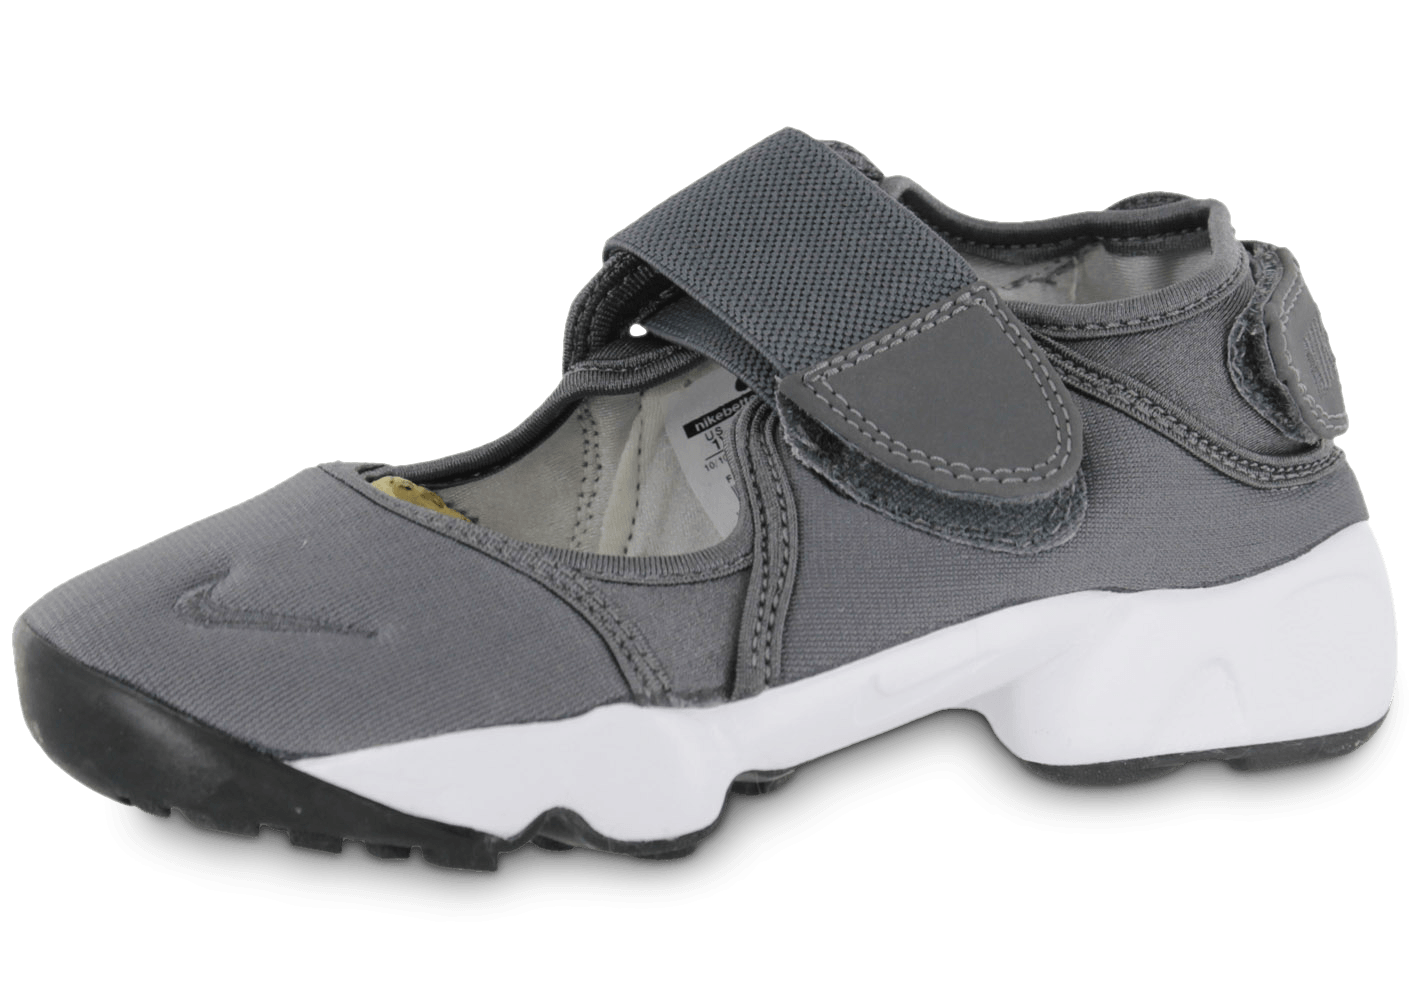 new style 53aca b0a05 Nike Rift Enfant Grise - Chaussures Chaussures - Chausport